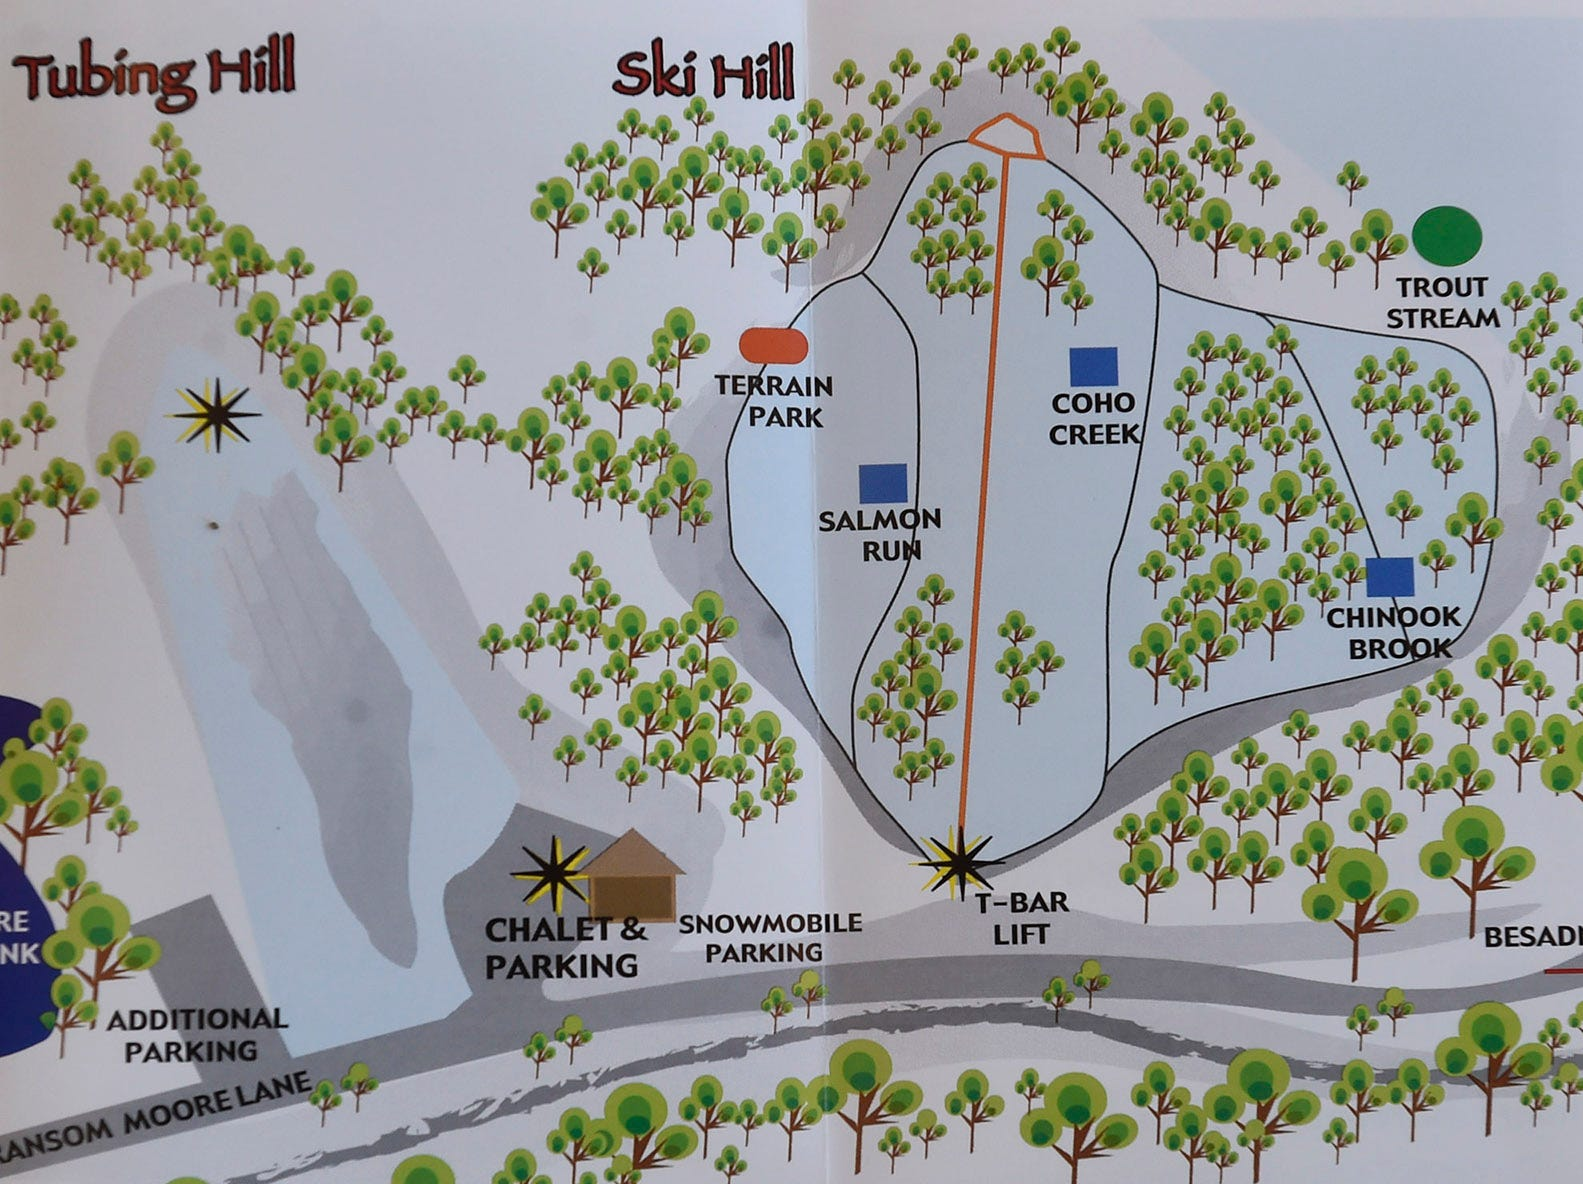 Map of both the tubing and ski hills at Winter Park in Kewaunee. The tubing hill is a 70-foot vertical drop and the ski/snowboarding hill drops 160 feet. Tina M. Gohr/USA TODAY NETWORK-Wisconsin